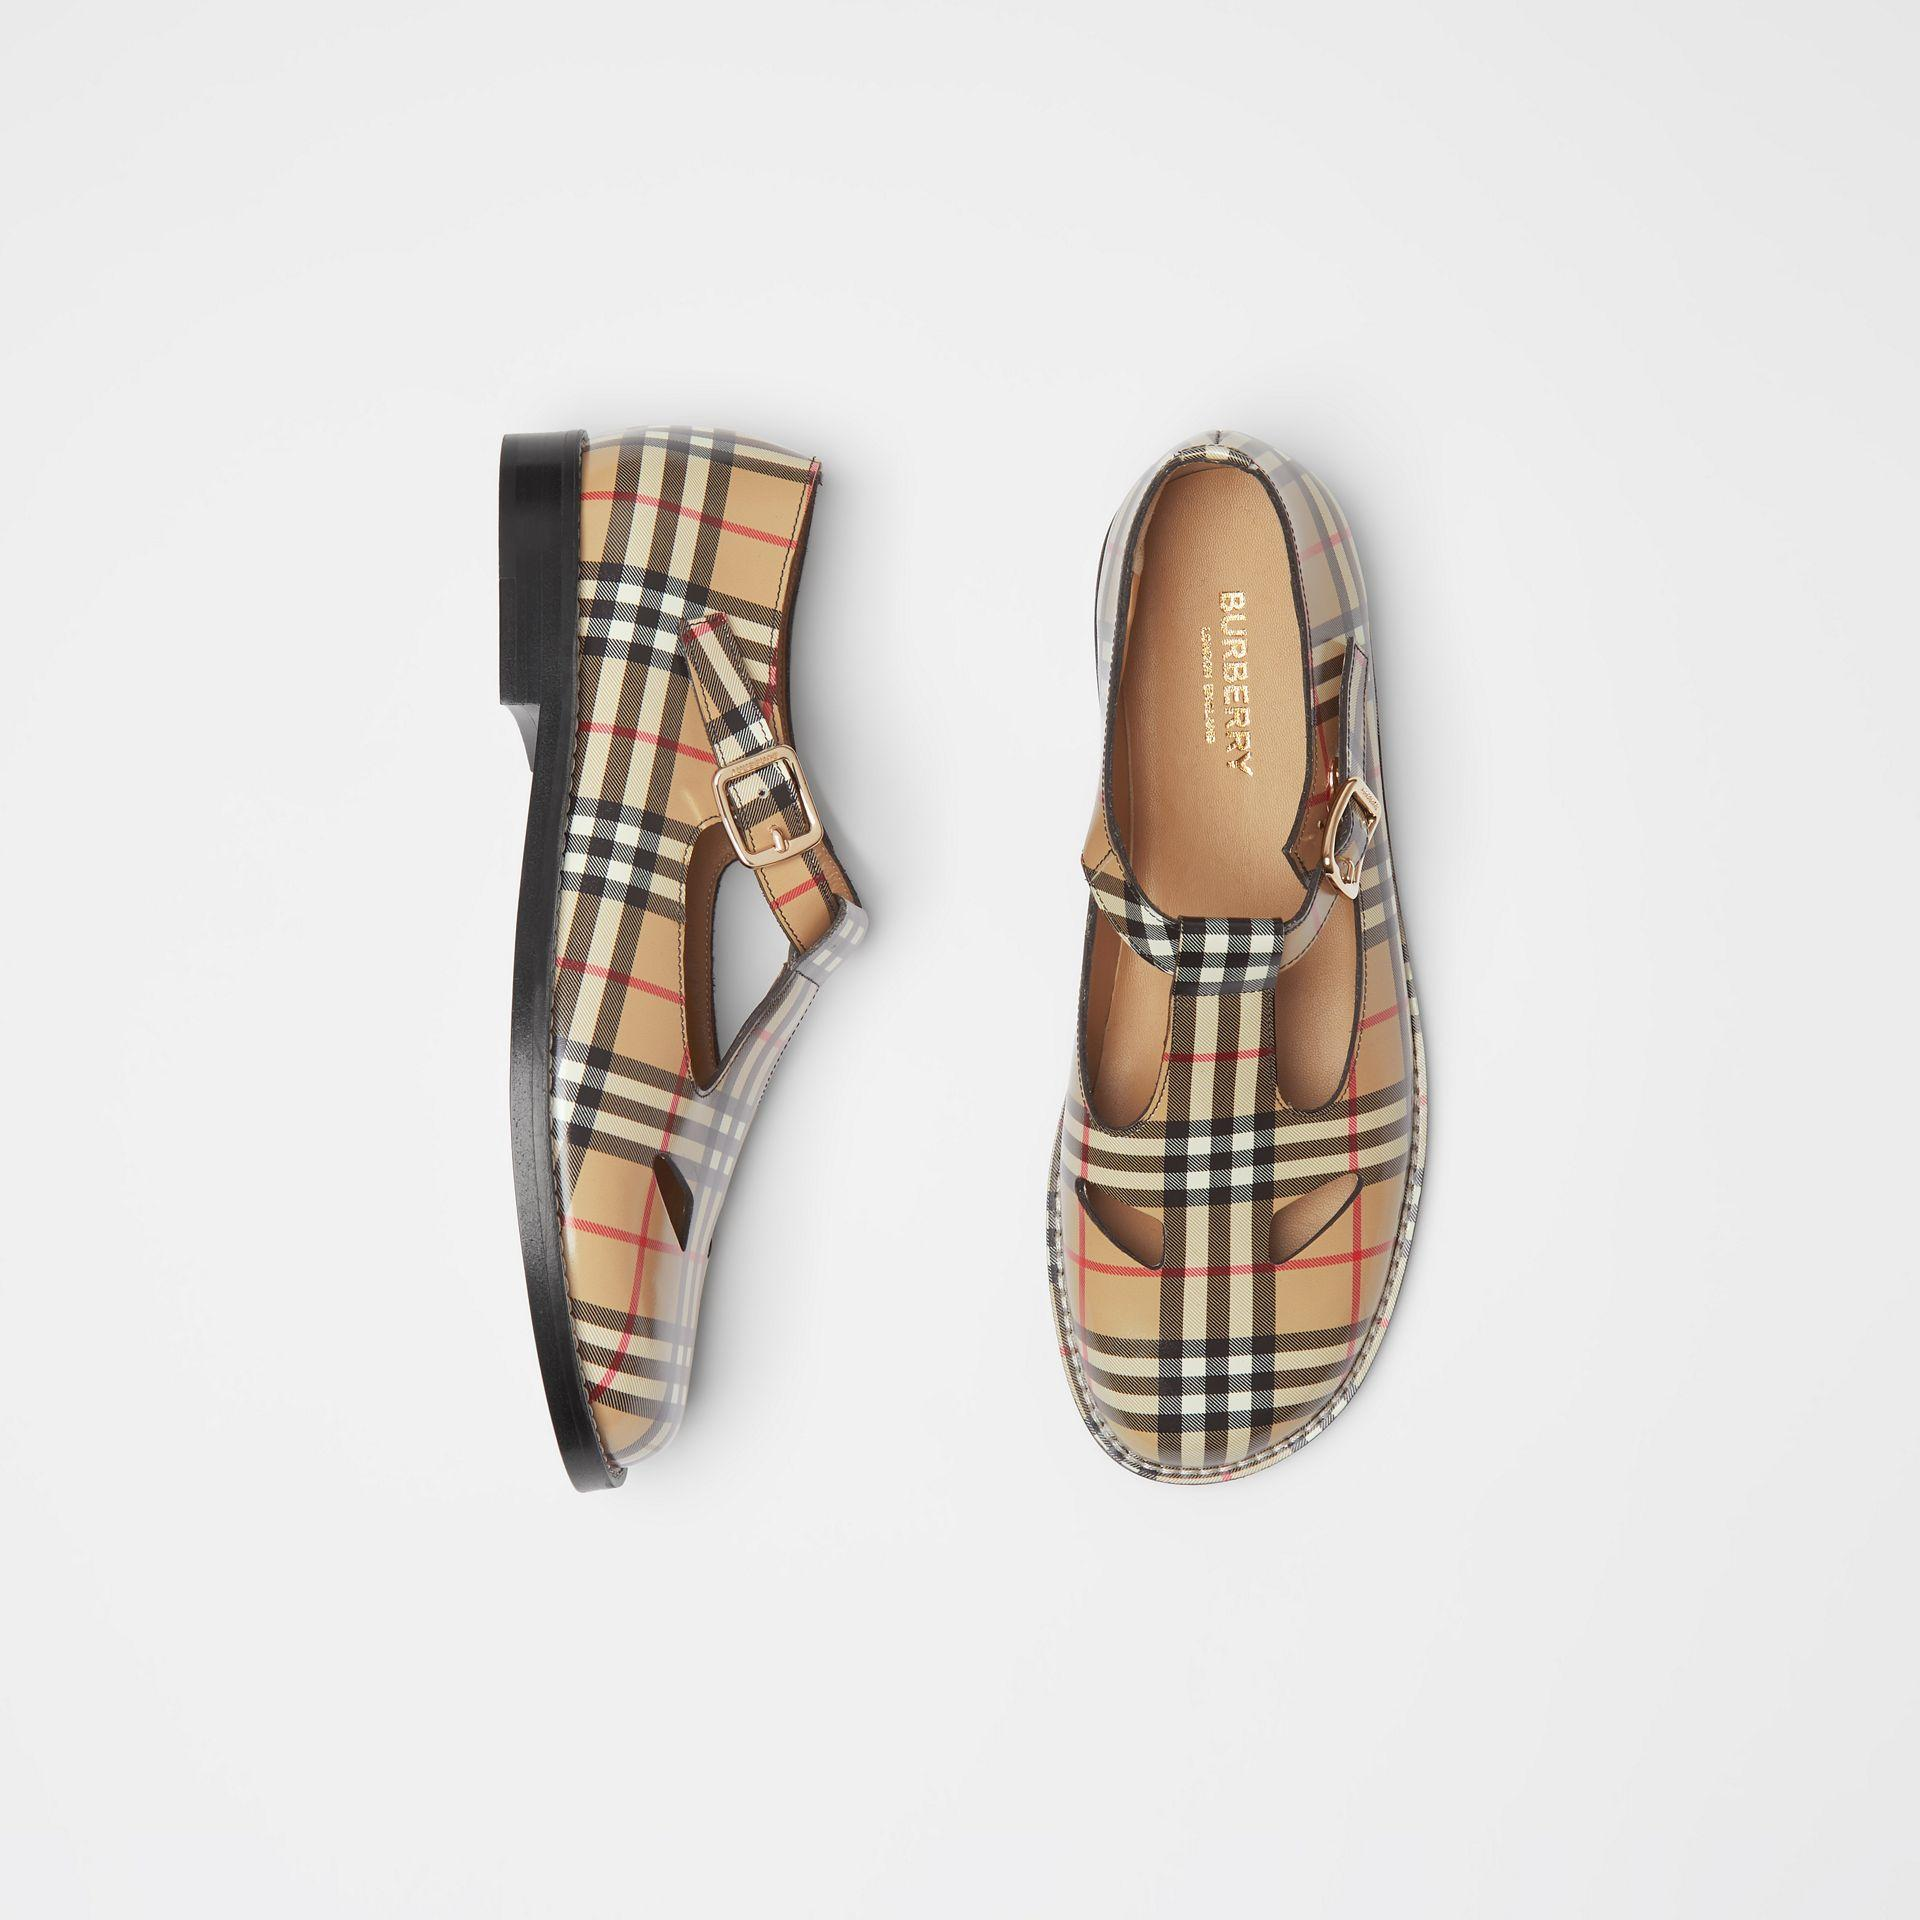 ab6b2a7b3a7 Lyst - Burberry Vintage Check Leather T-bar Shoes in Natural